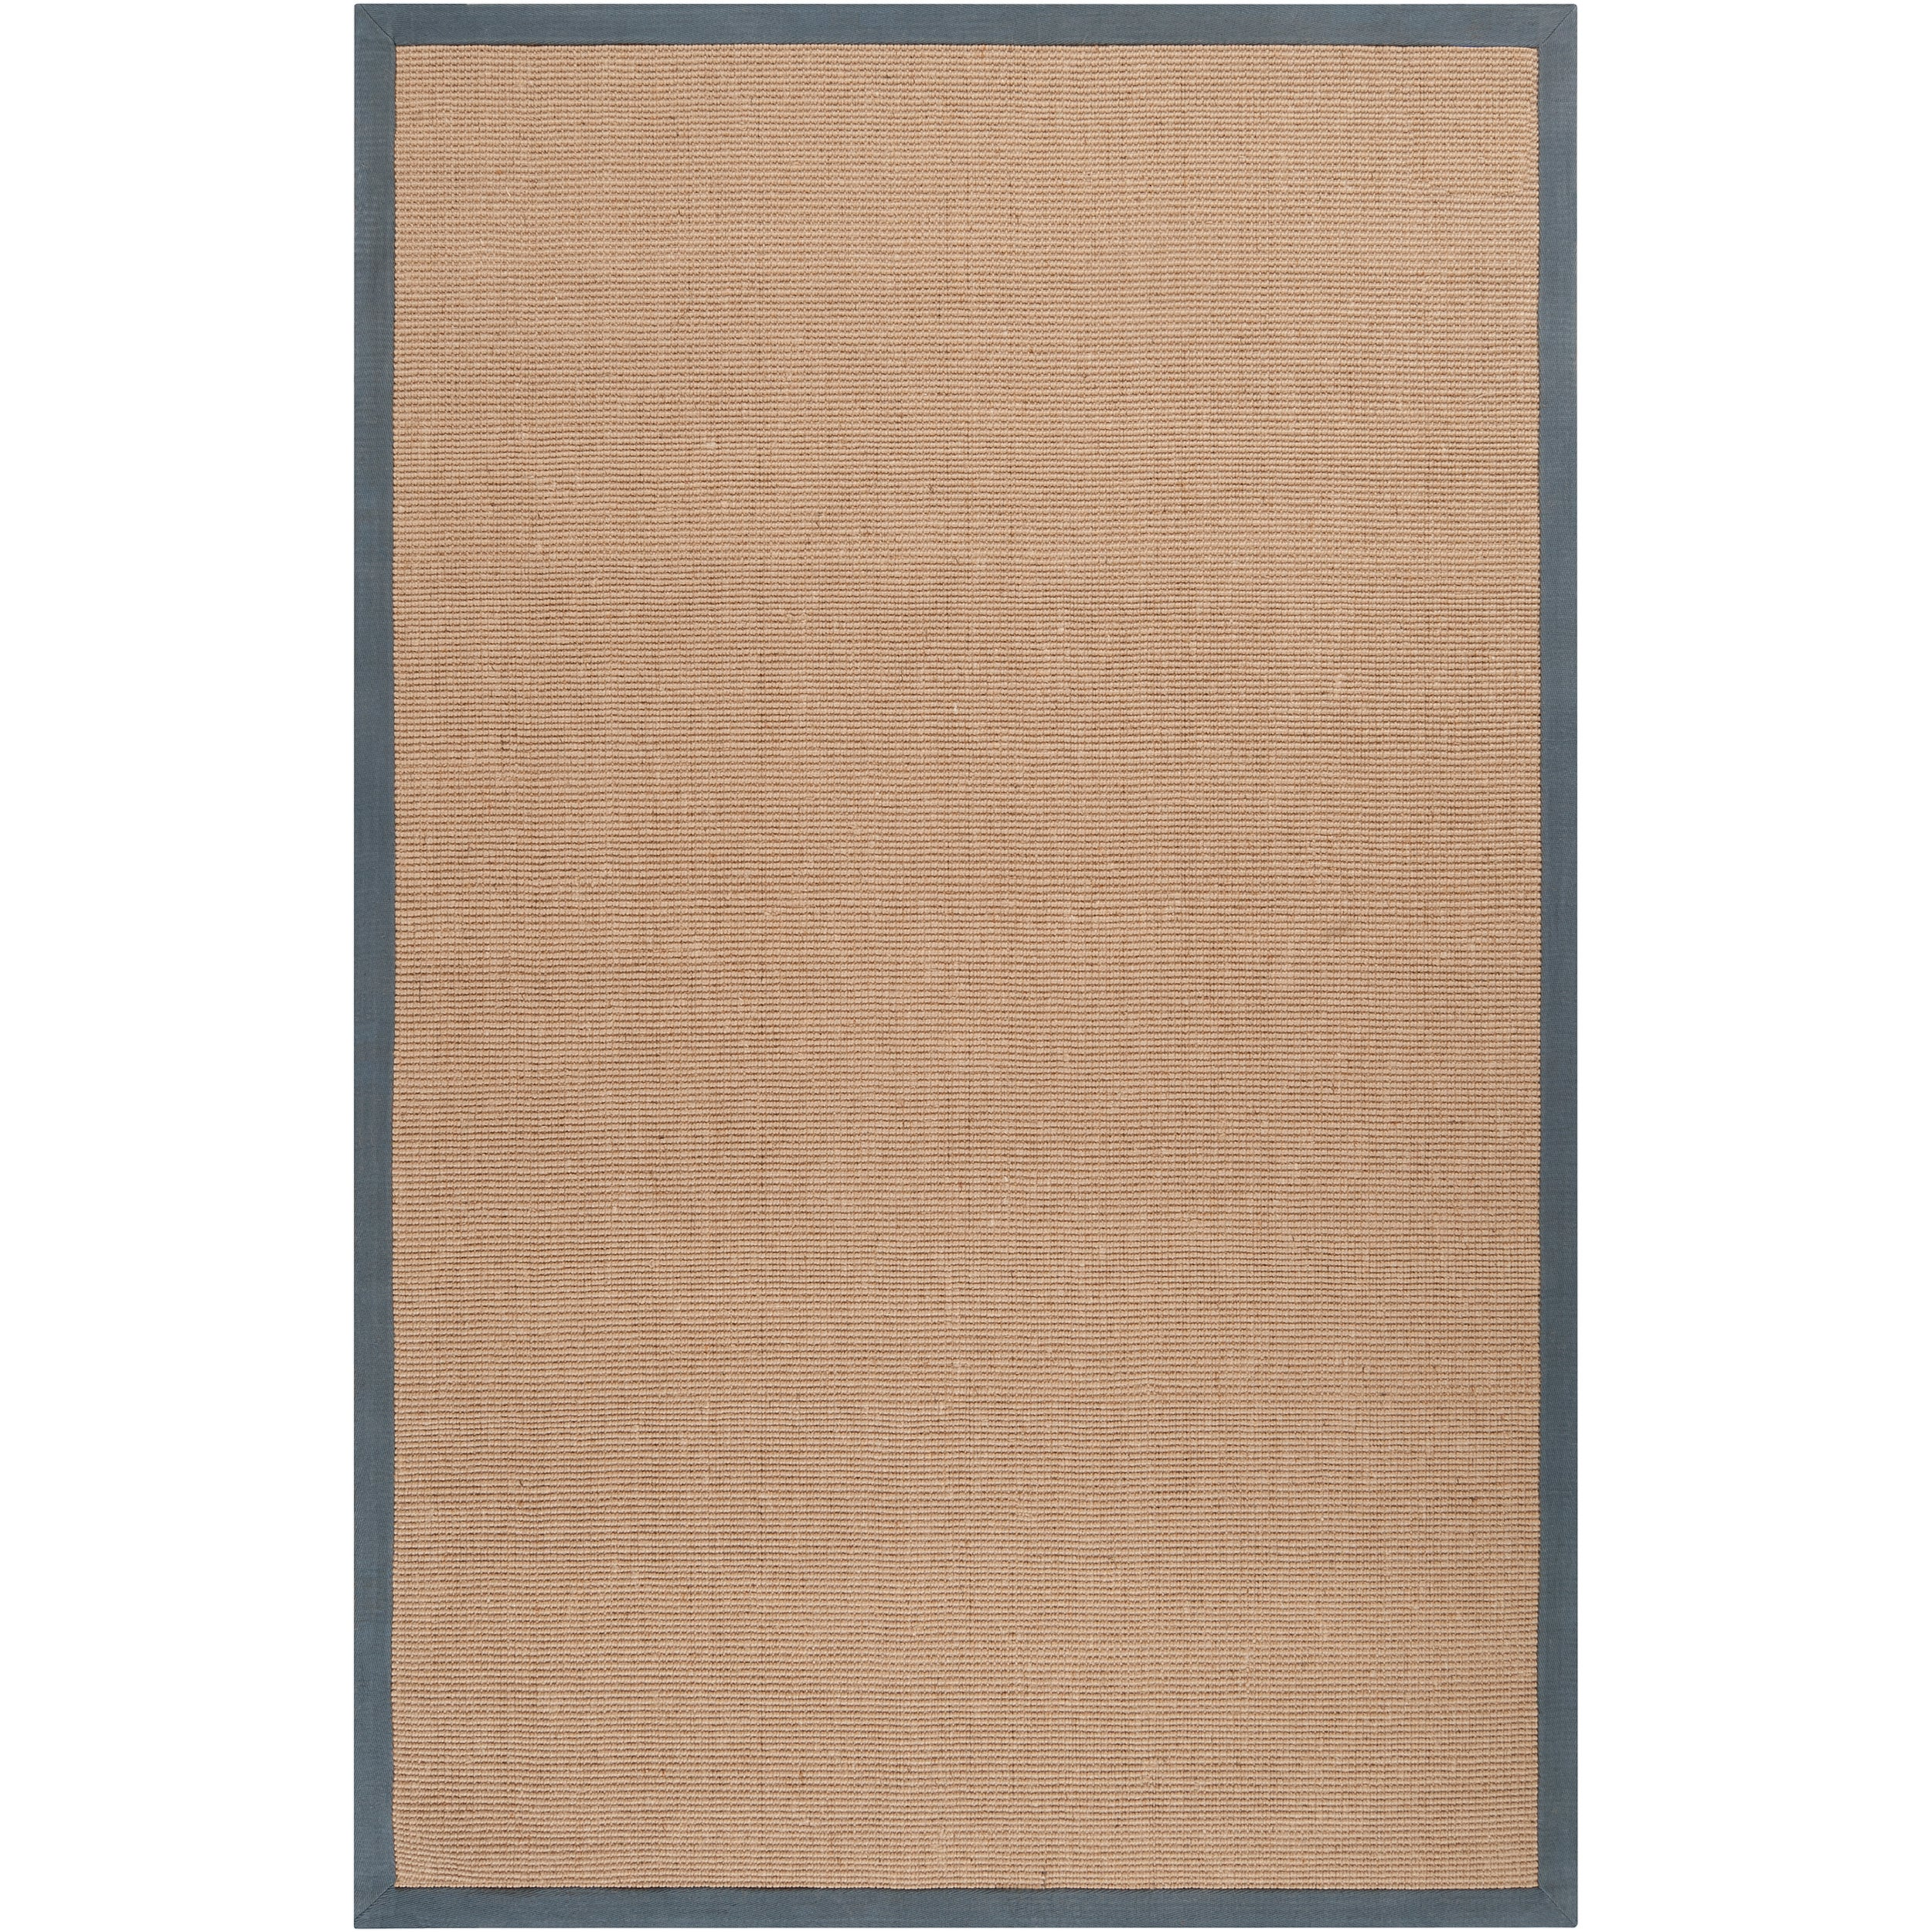 Hand-woven Gray Sophie A Natural Fiber Jute Area Rug (9' x 13')